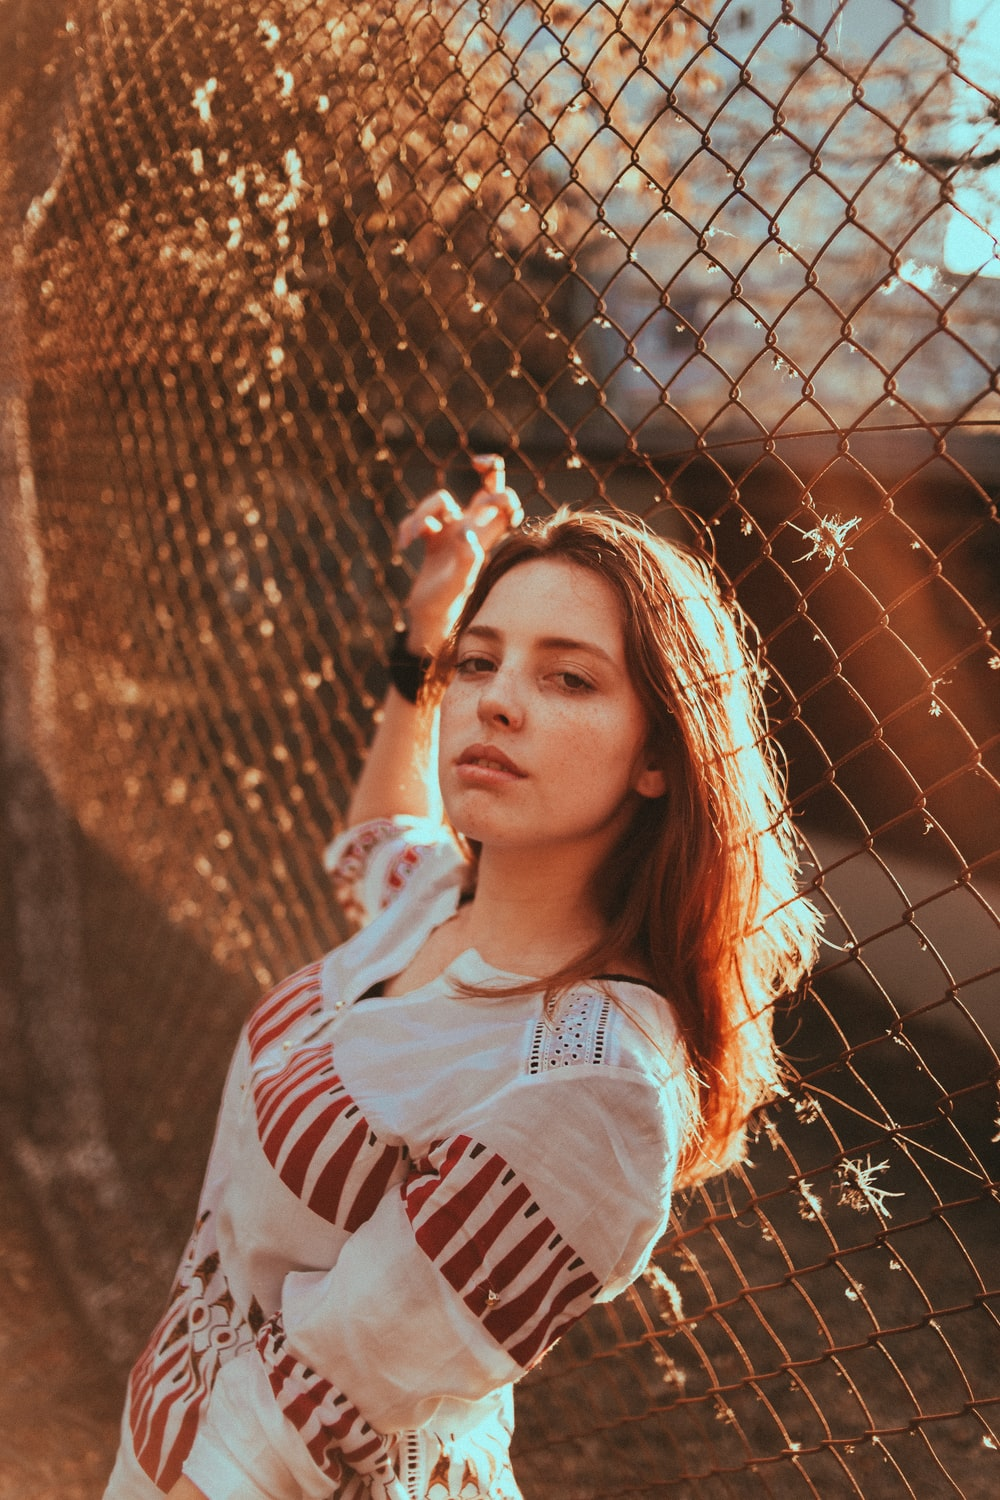 selective focus photography of woman standing beside chain link fence during daytime